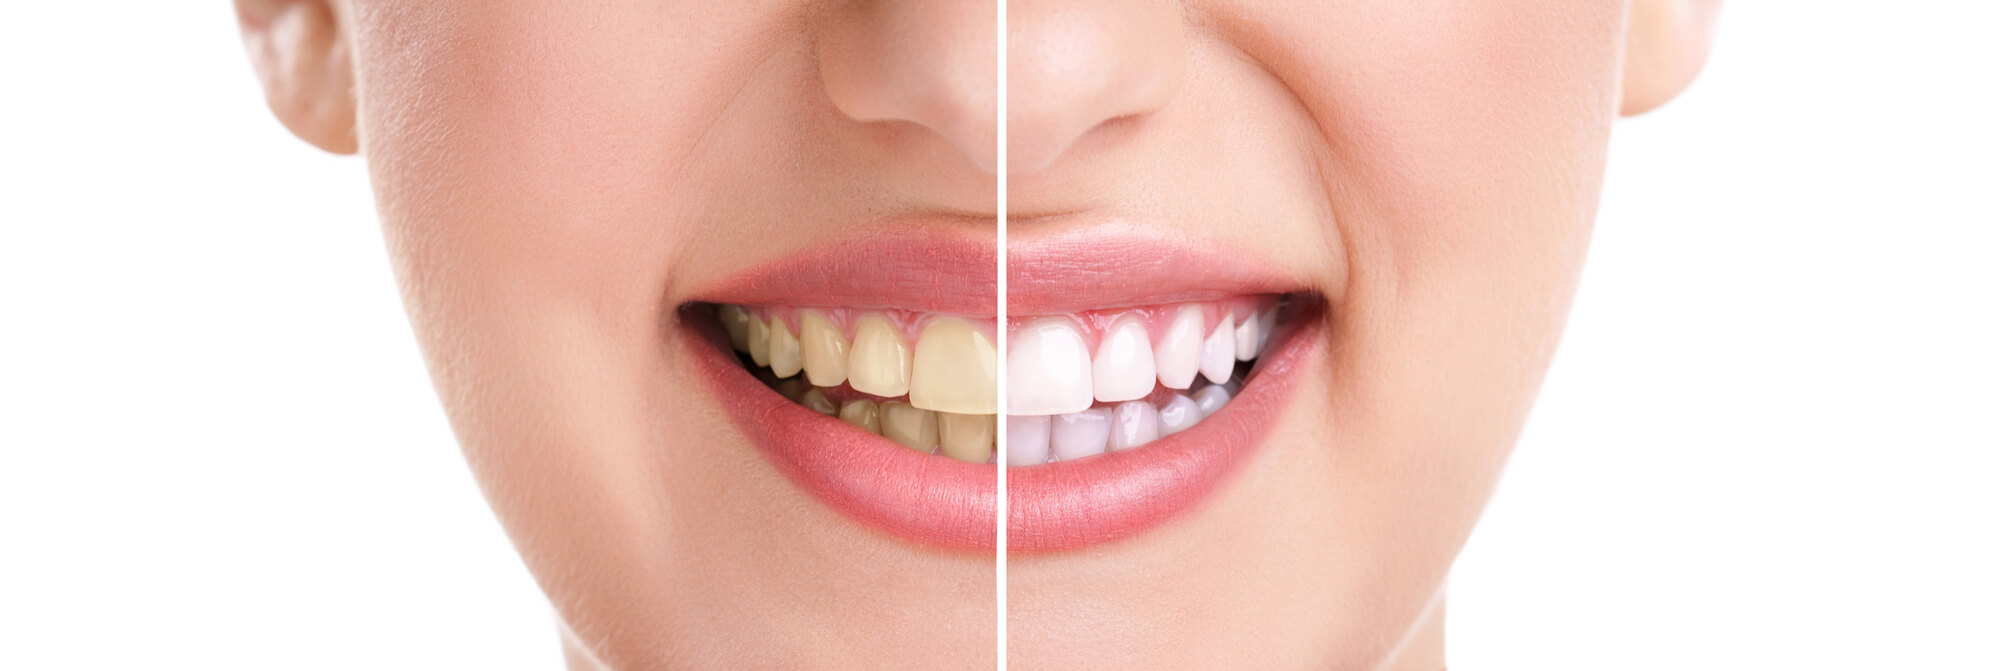 Where can I get Teeth Whitening Charleston SC?